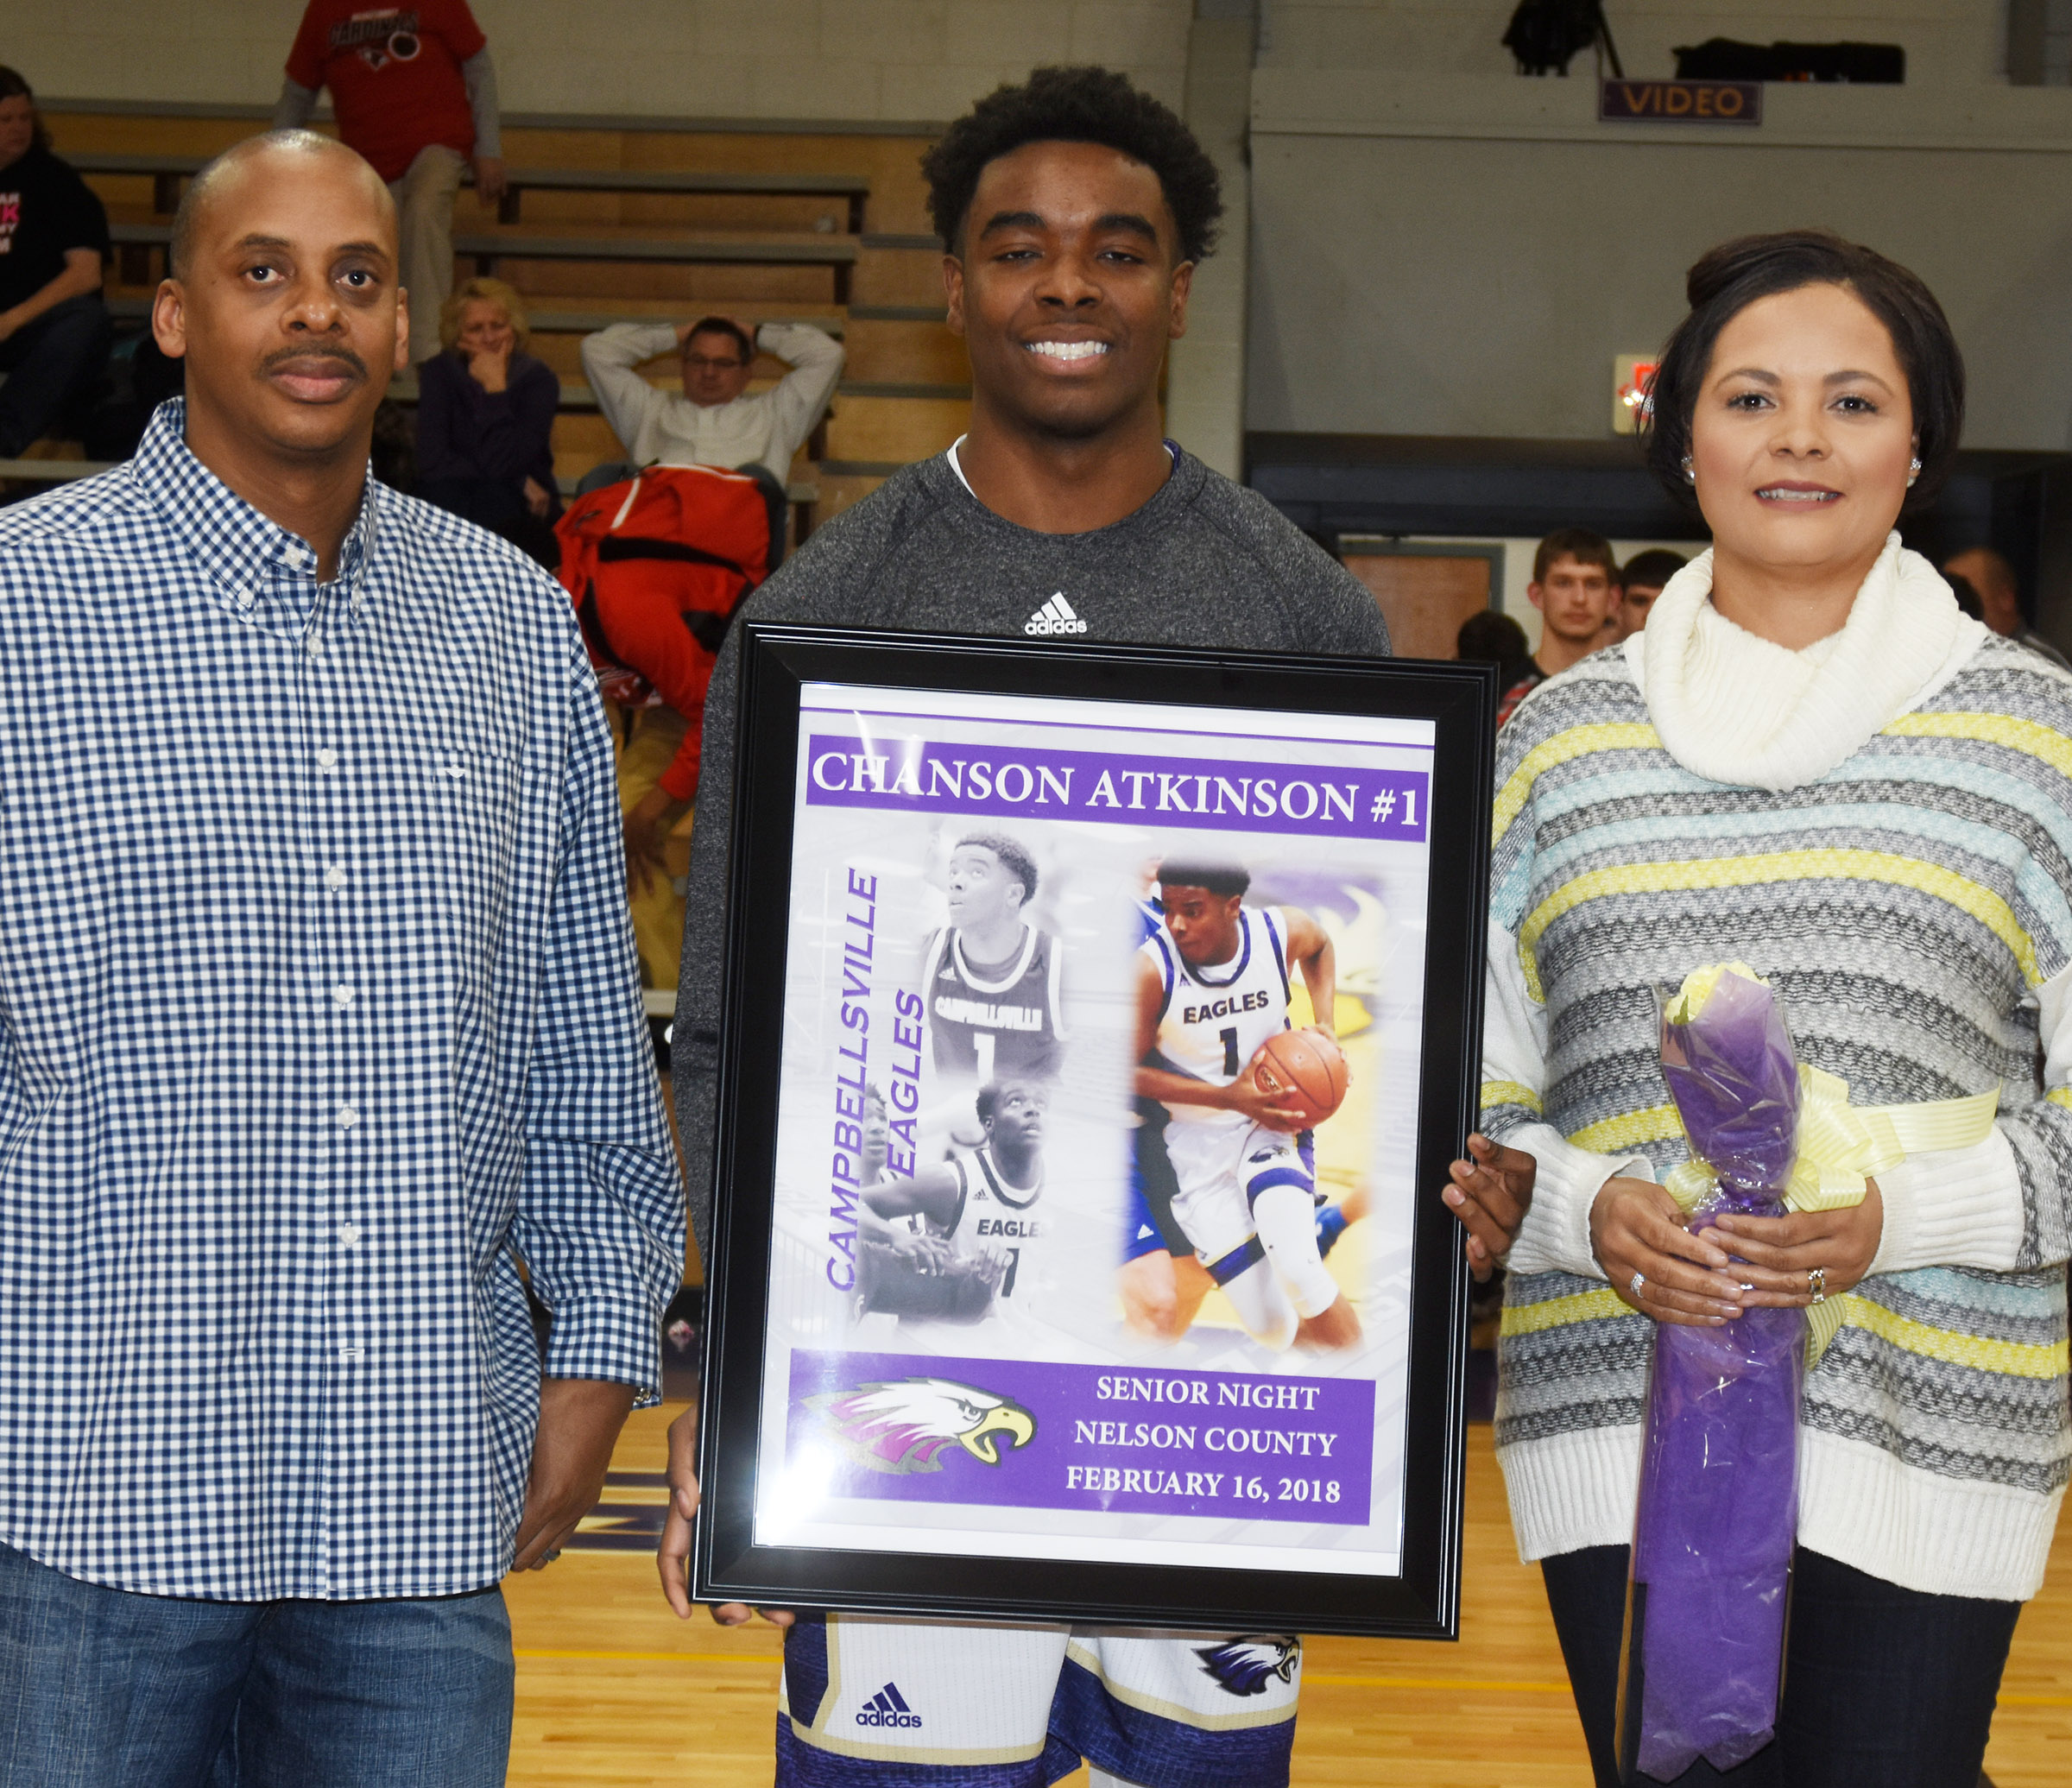 CHS senior boys' basketball player Chanson Atkinson is honored. He is pictured with his parents Al and Rochelle Brady.